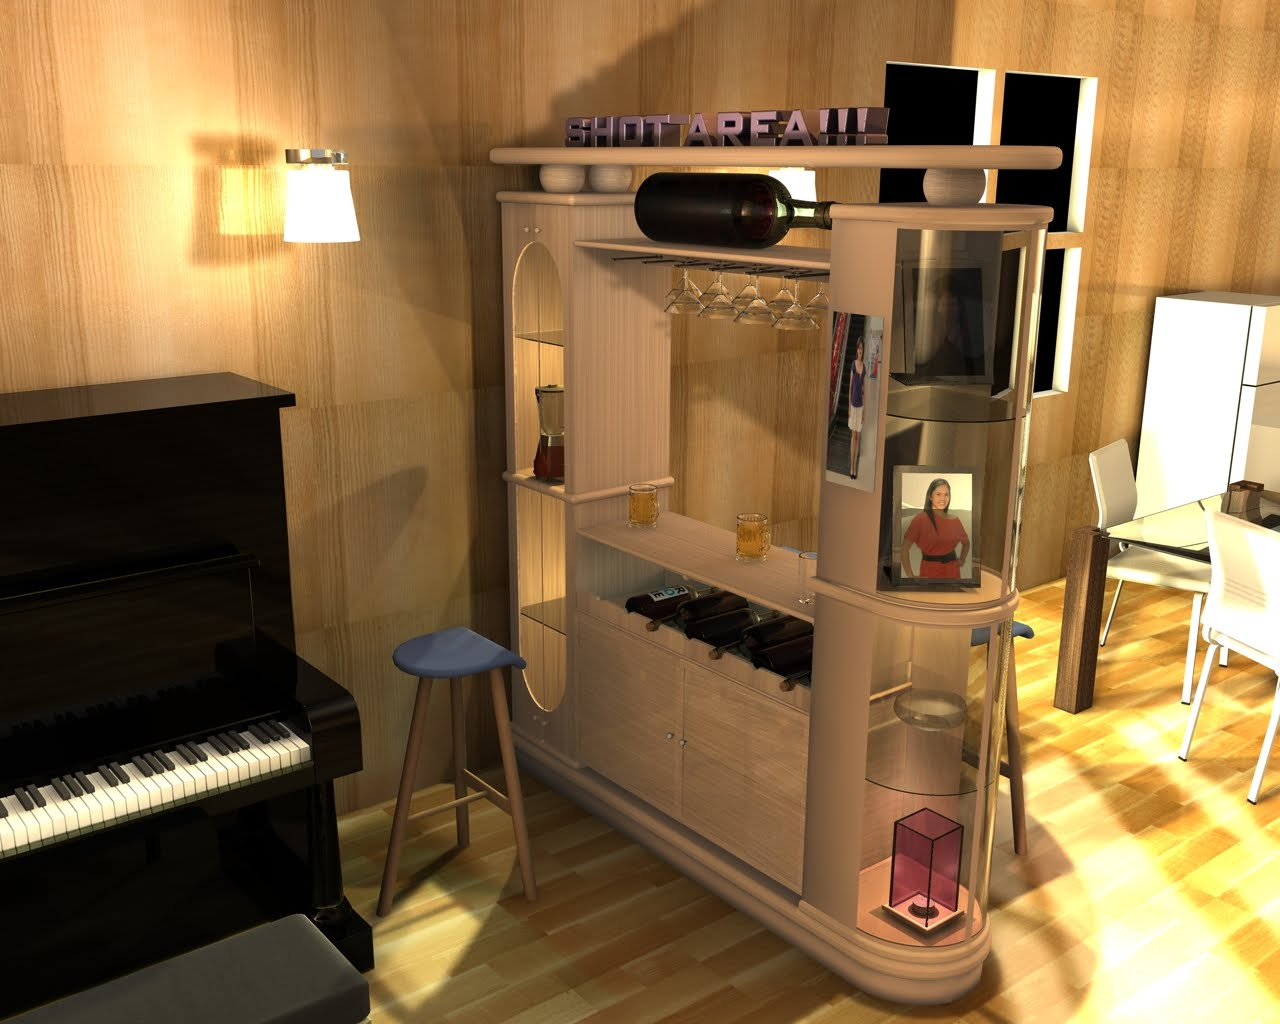 creative arts mini bar design concept. Black Bedroom Furniture Sets. Home Design Ideas